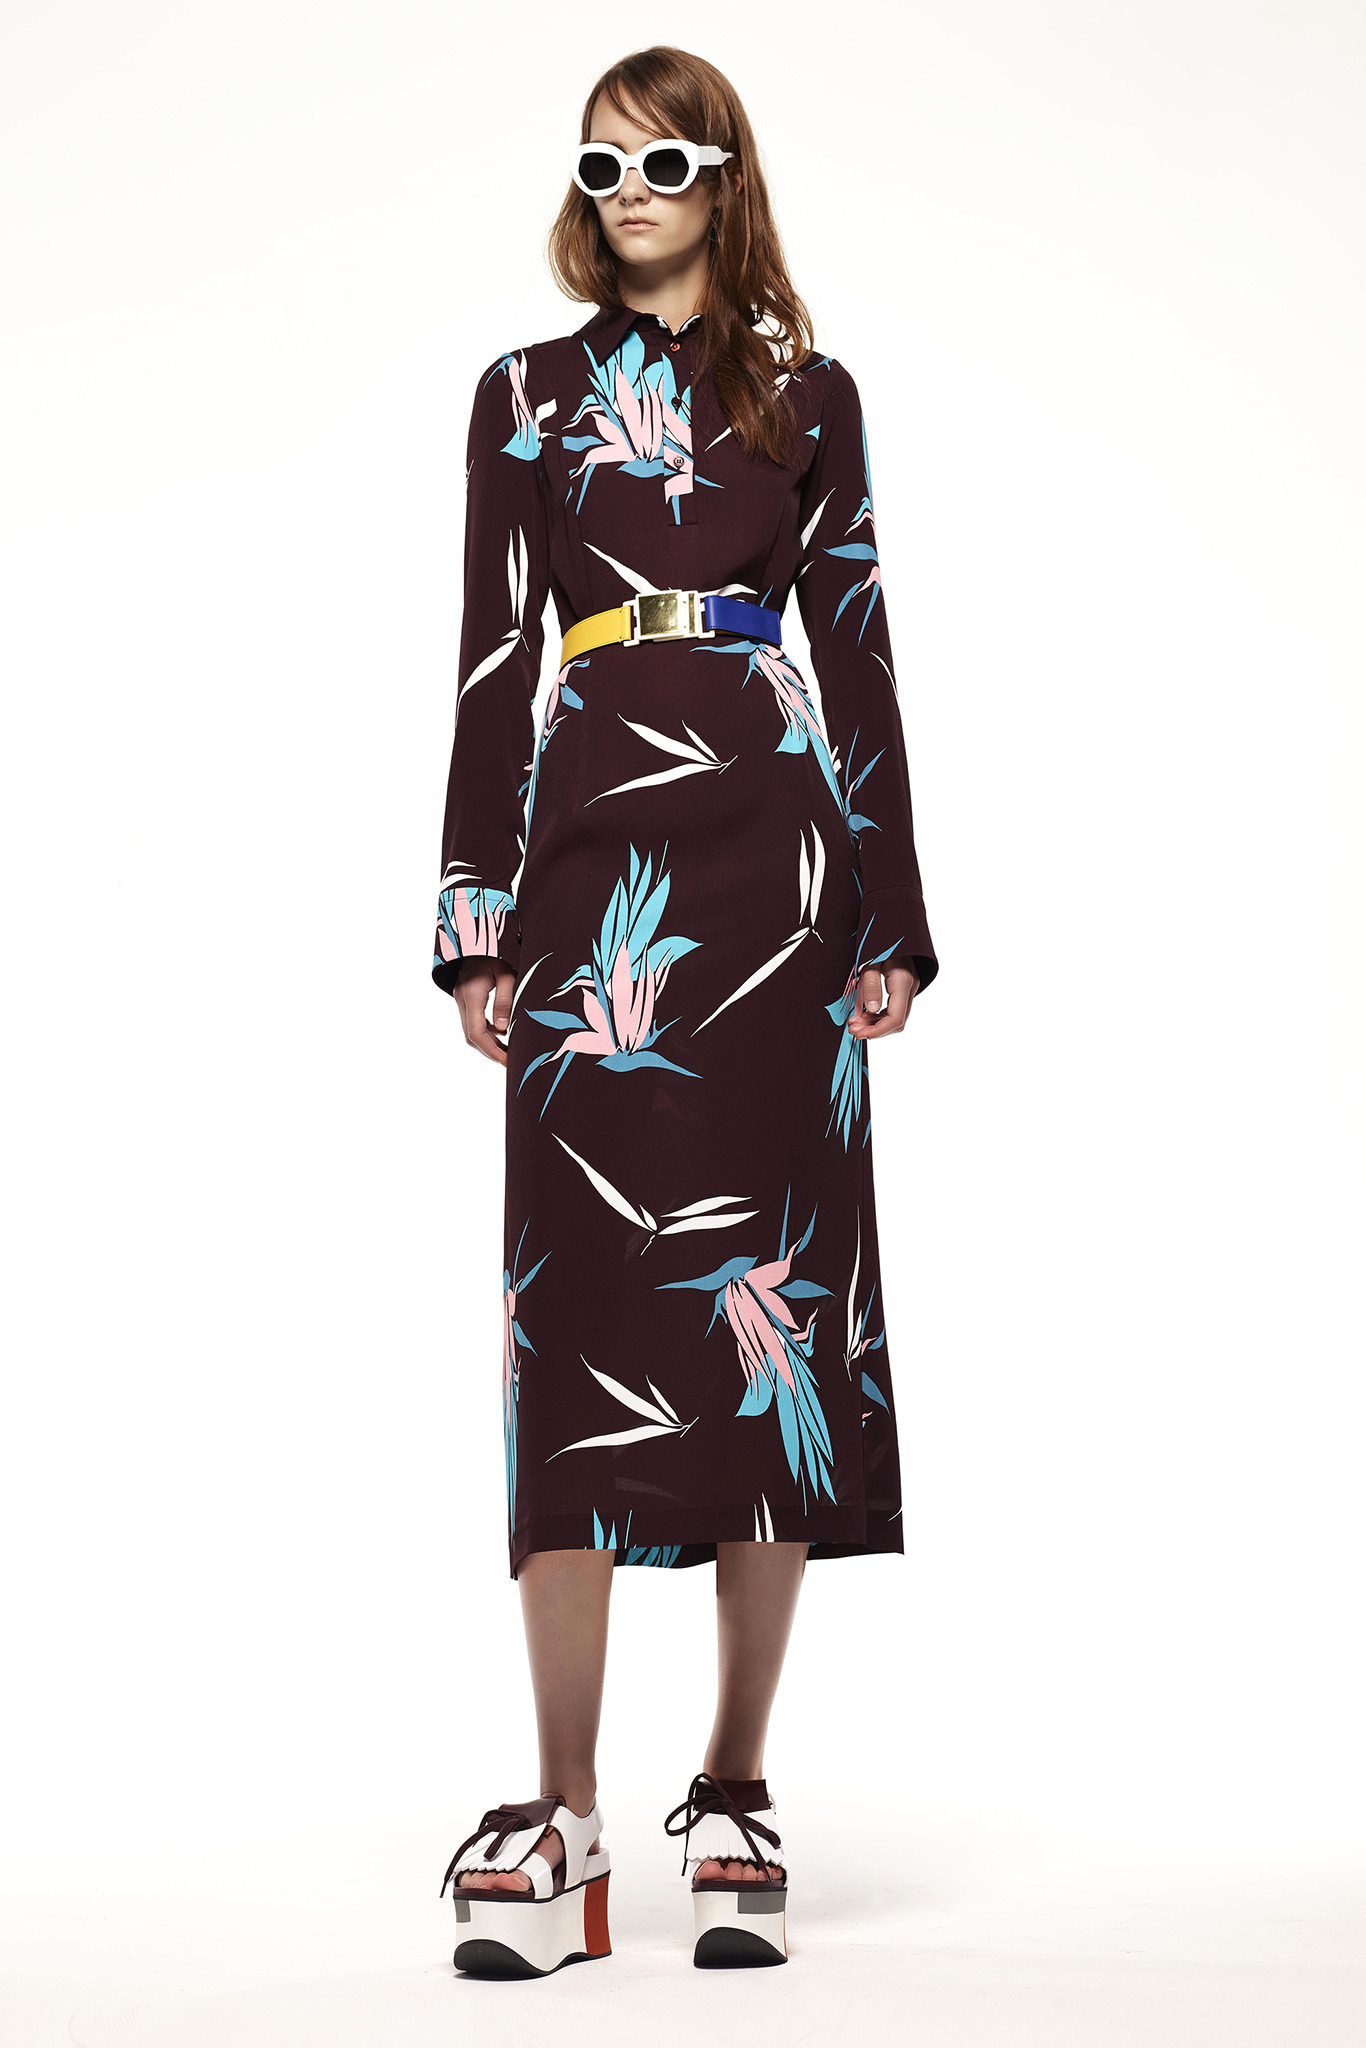 Marni Resort 2015